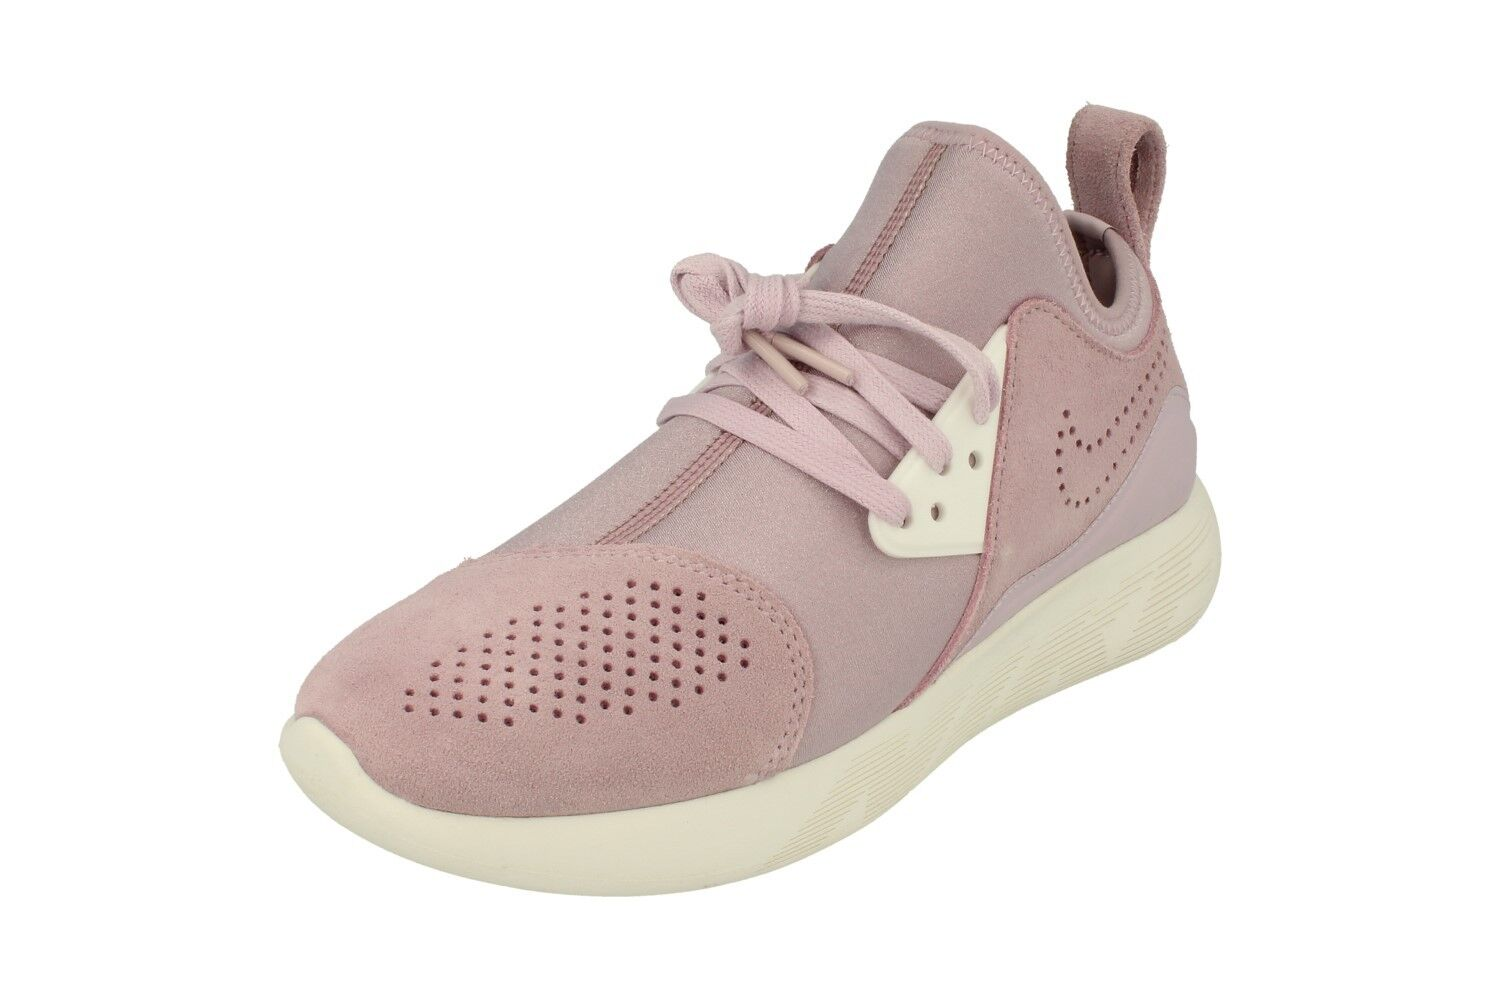 Nike Femme Lunarcharge Premium Running Trainers 923286 Sneakers Chaussures 500